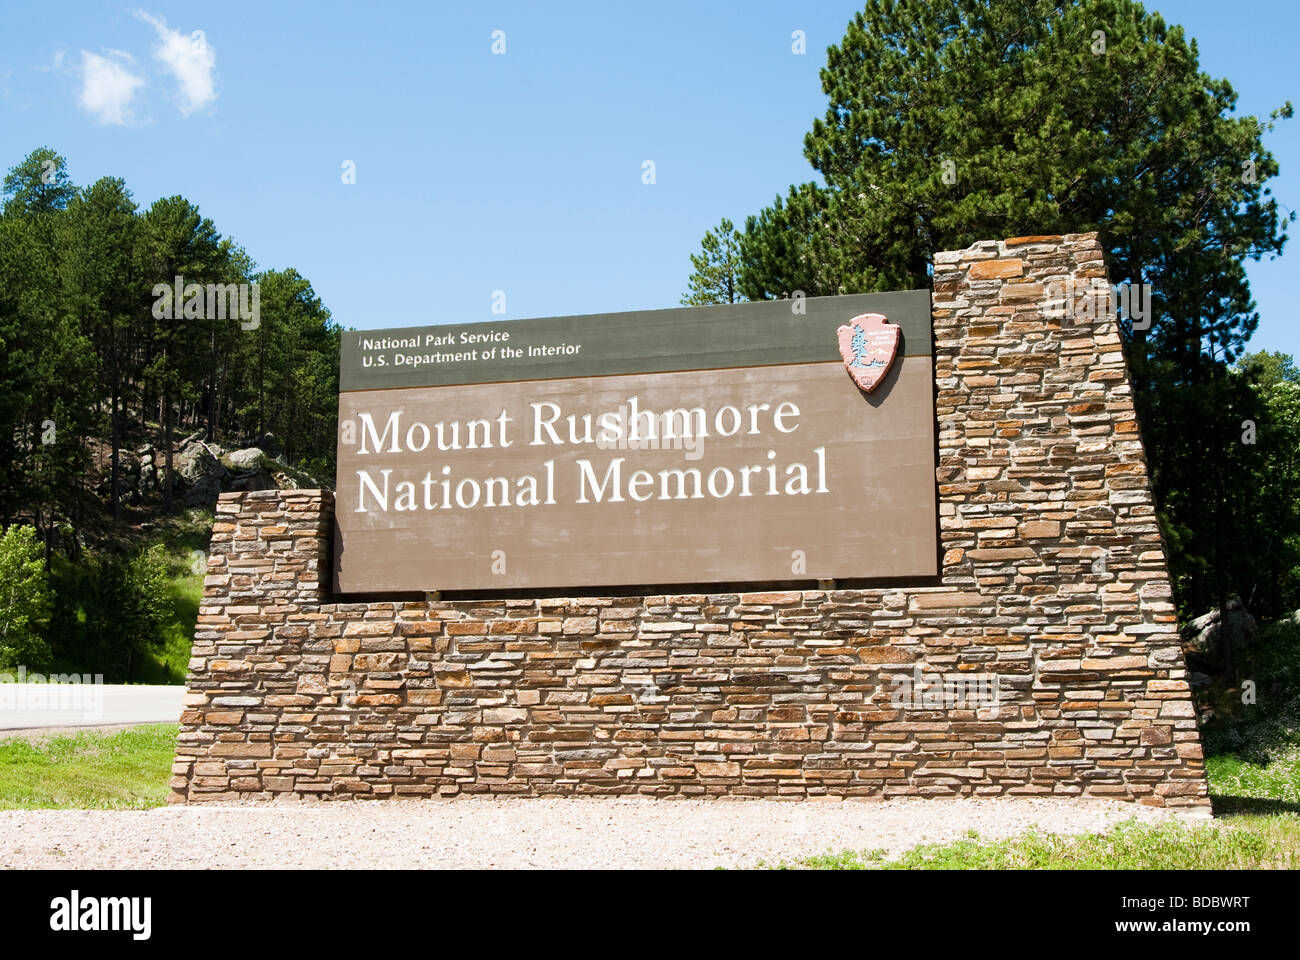 Entranced sign to the Mount Rushmore National Memorial in the Black Hills of South Dakota - Stock Image